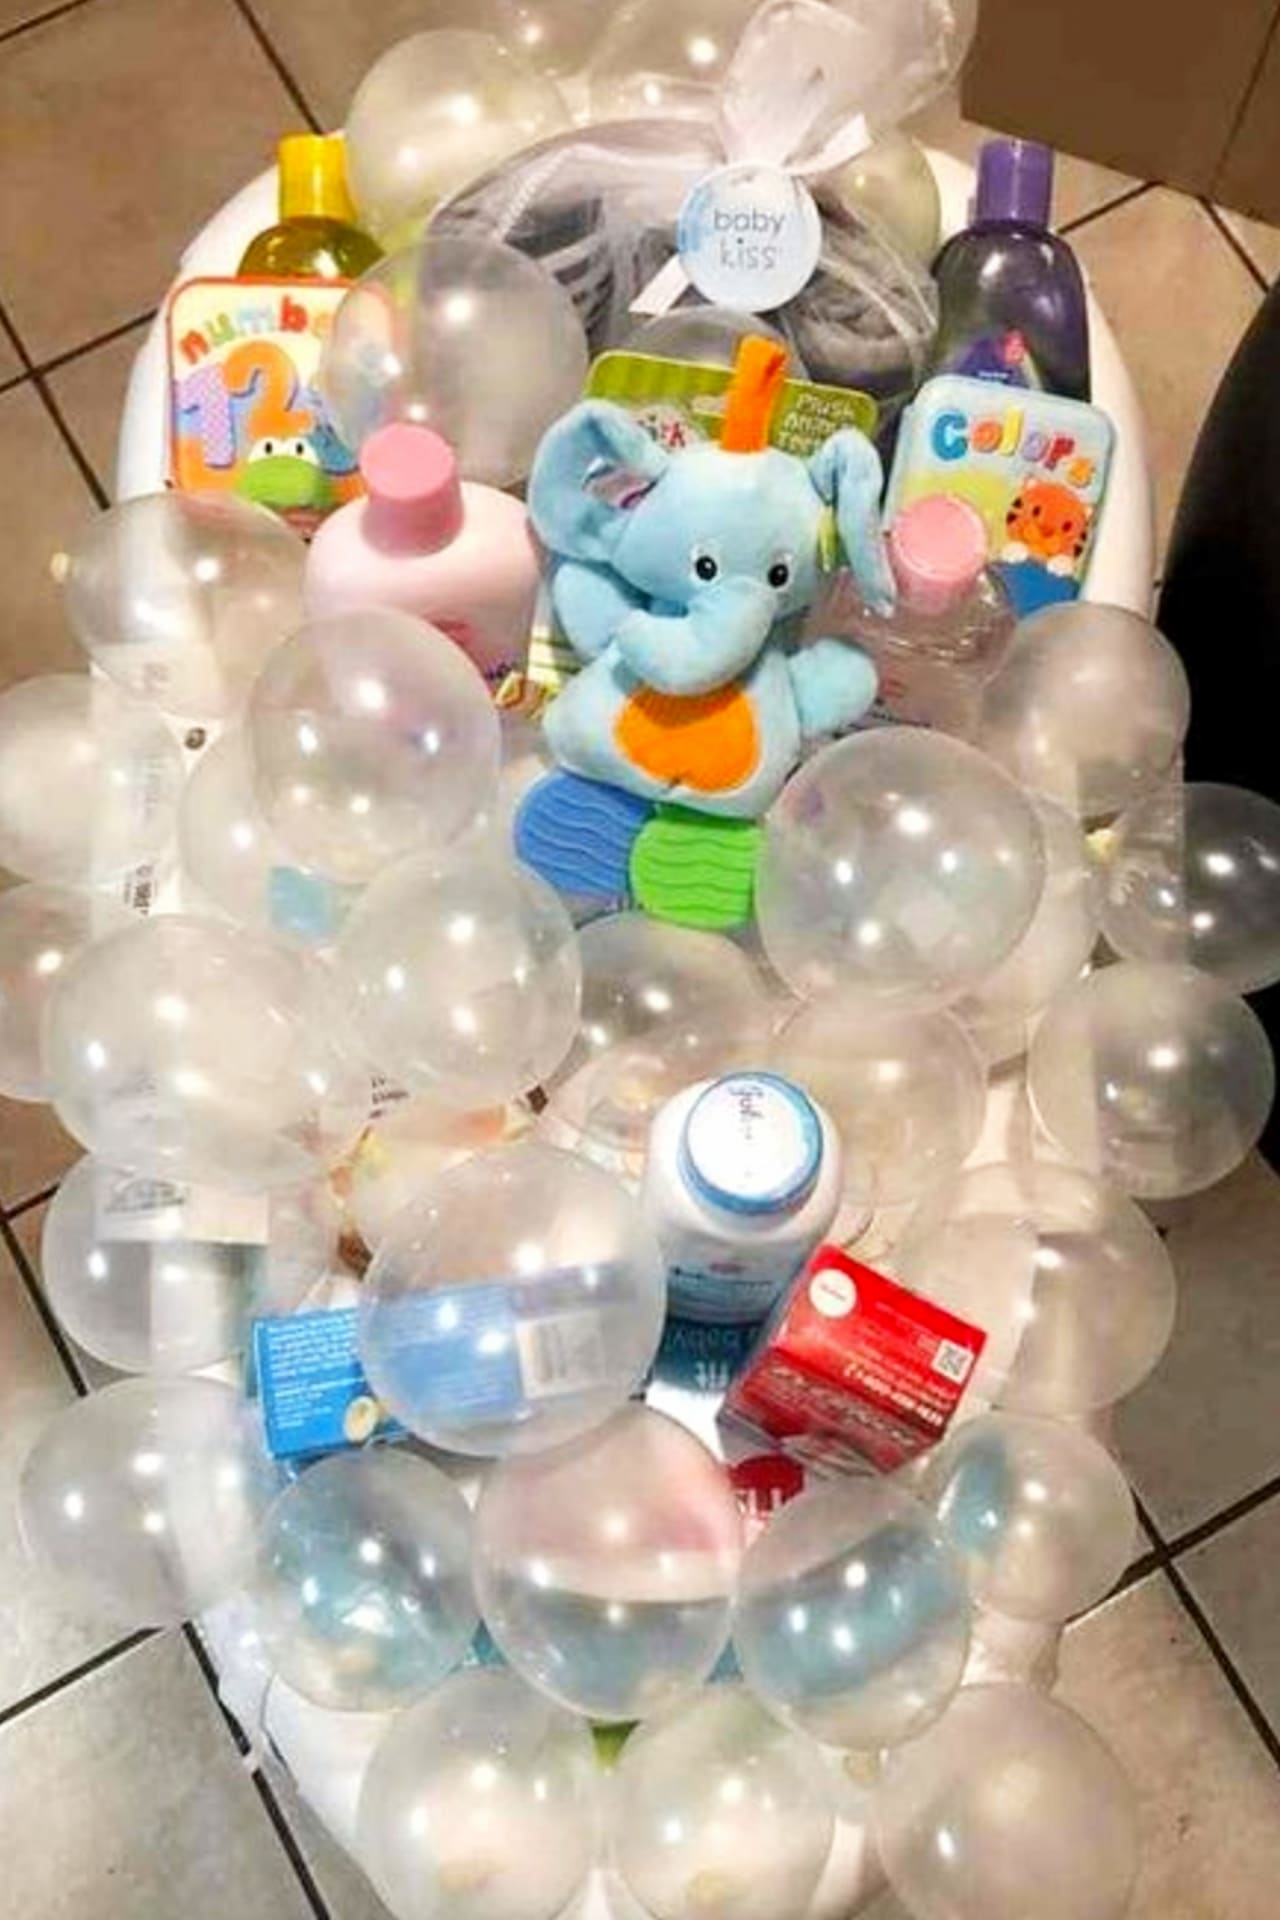 Baby Shower Gift Ideas!  DIY baby shower gifts - Unique, creative DIY baby shower gift baskets and baby bathtub gift baskets to make cheap - Dollar Stores DIY baby shower gifts for boys, girls and gender neutral / gender unknown